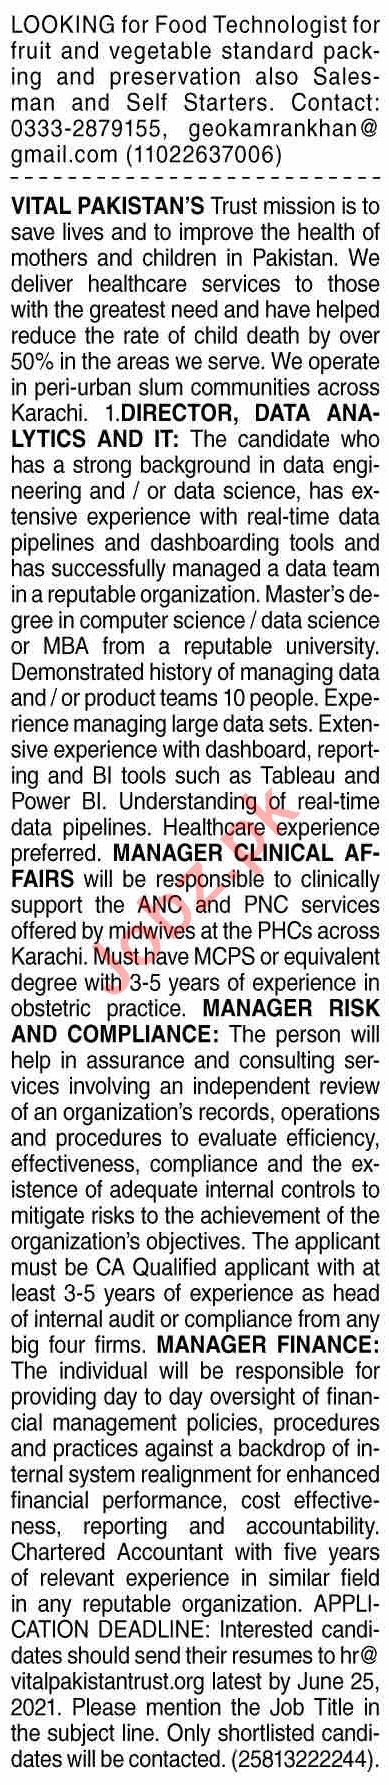 Dawn Sunday Classified Ads 20 June 2021 for Multiple Staff